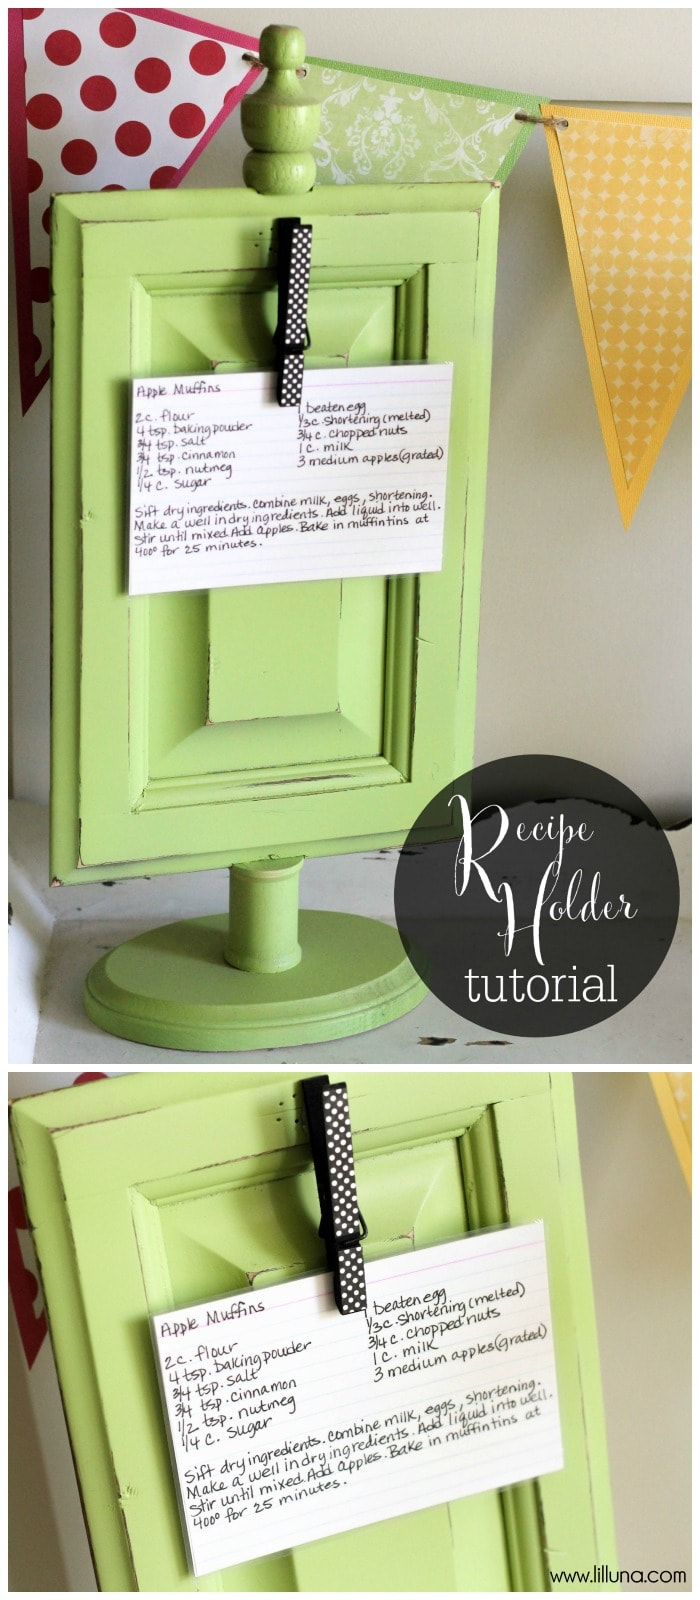 Super cute and easy Recipe Holder tutorial { lilluna.com } This is a great gift idea!!